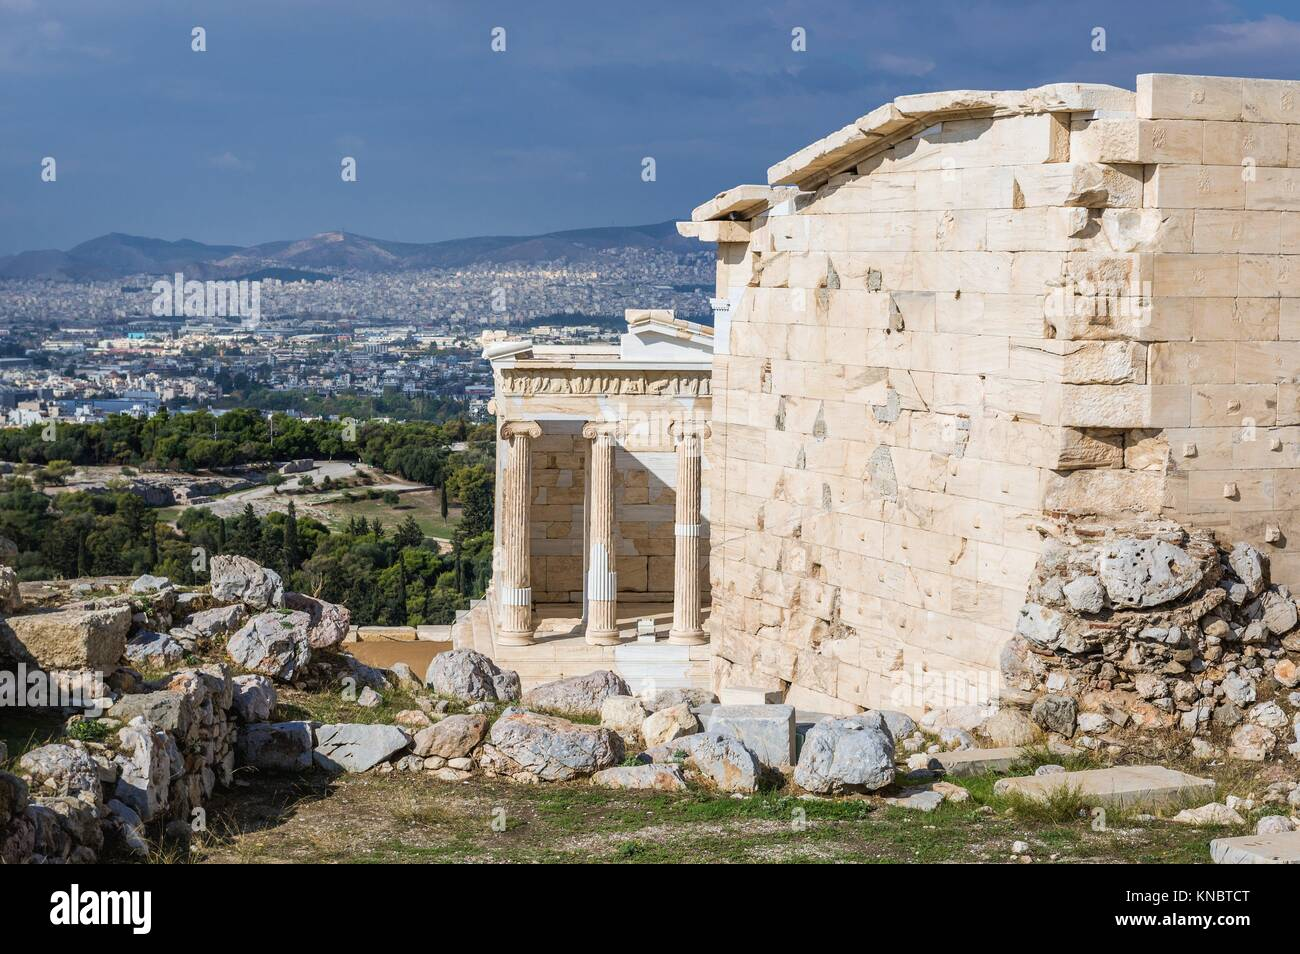 Temple of Athena Nike in Acropolis of Athens city, Greece. Stock Photo